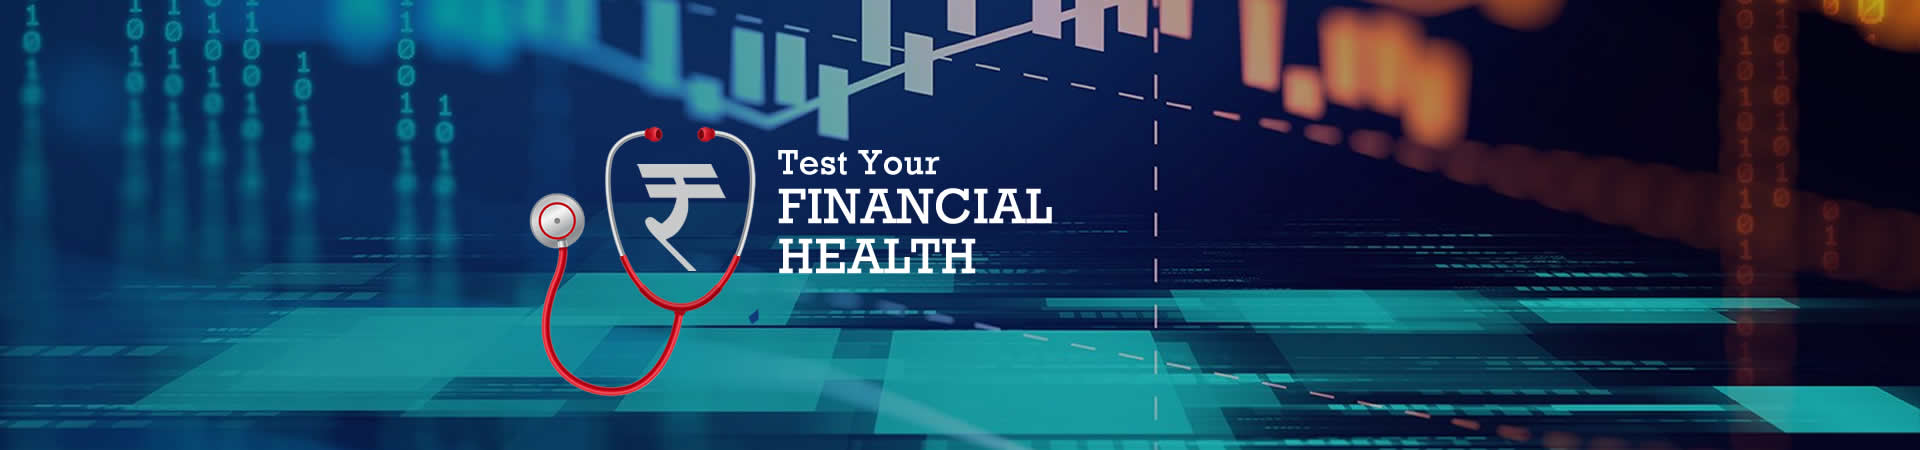 Test your Financial Health